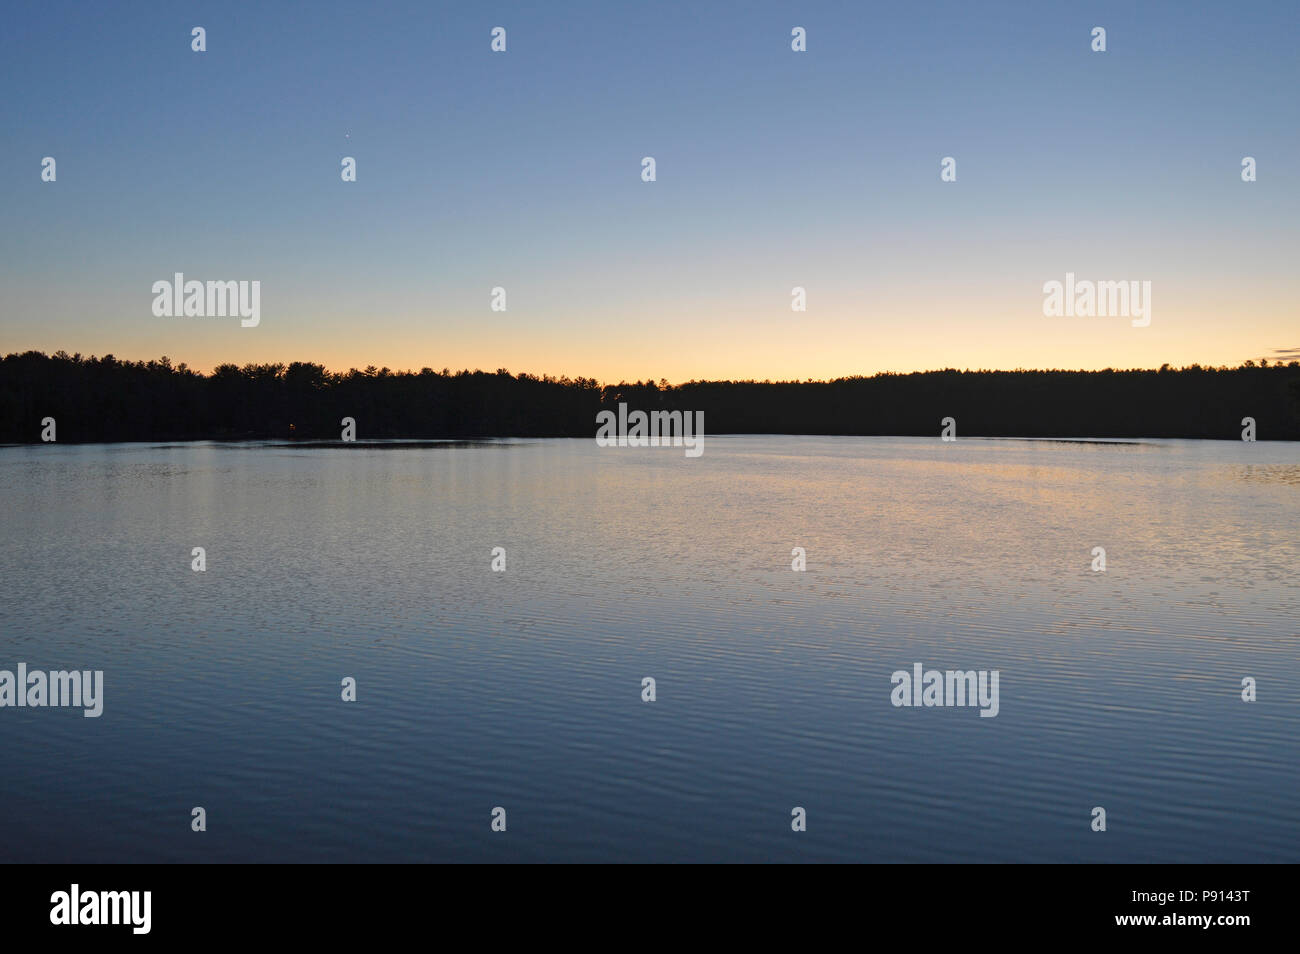 A cloudless sunset over Western Quebec, near Ladysmith, Quebec, Canada on a mid-summer evening. - Stock Image